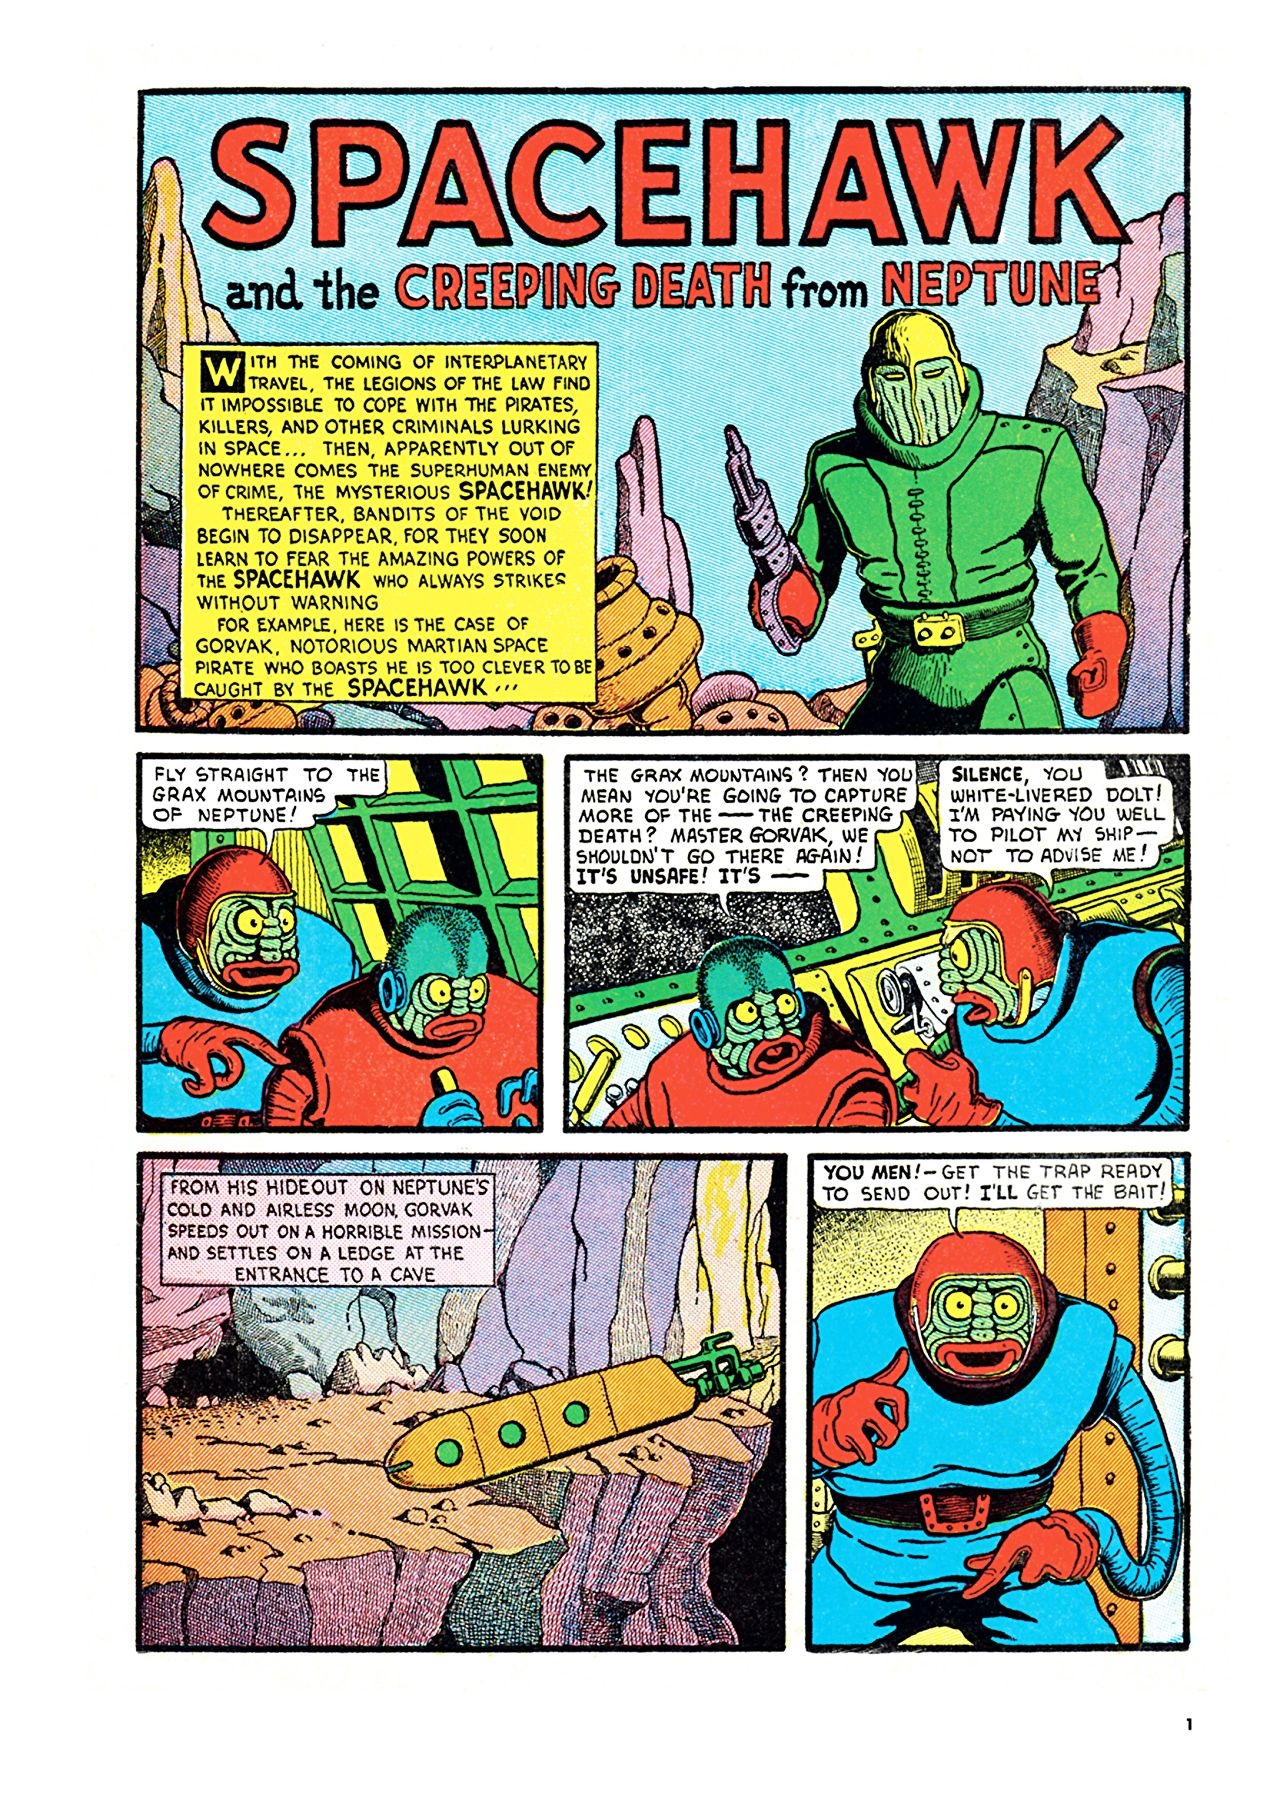 Spacehawk - Comics by comiXology